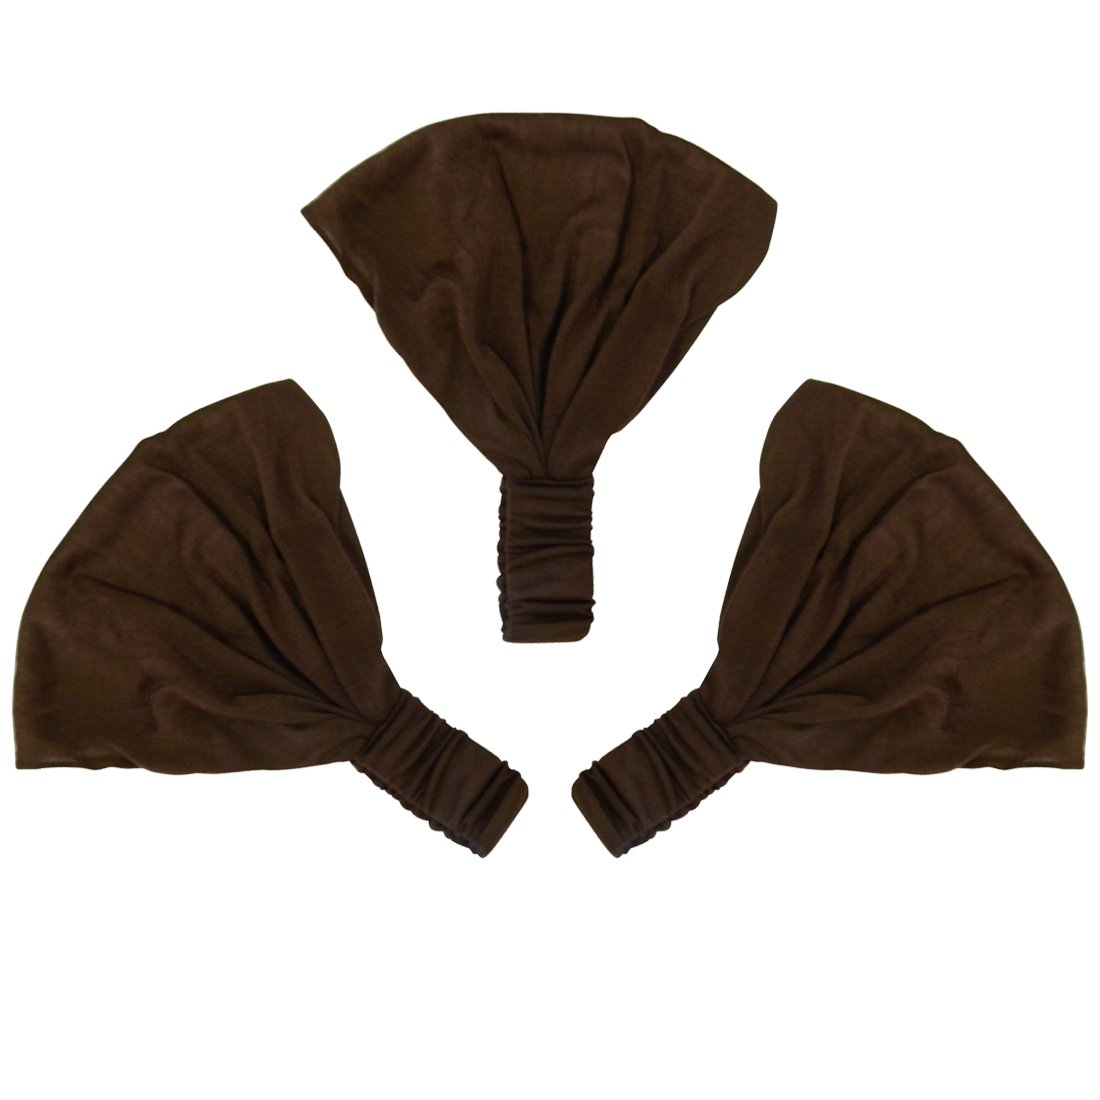 Set of 3 Wide Cotton Head Band Solid Boho Yoga Style Soft Hairbands - Brown